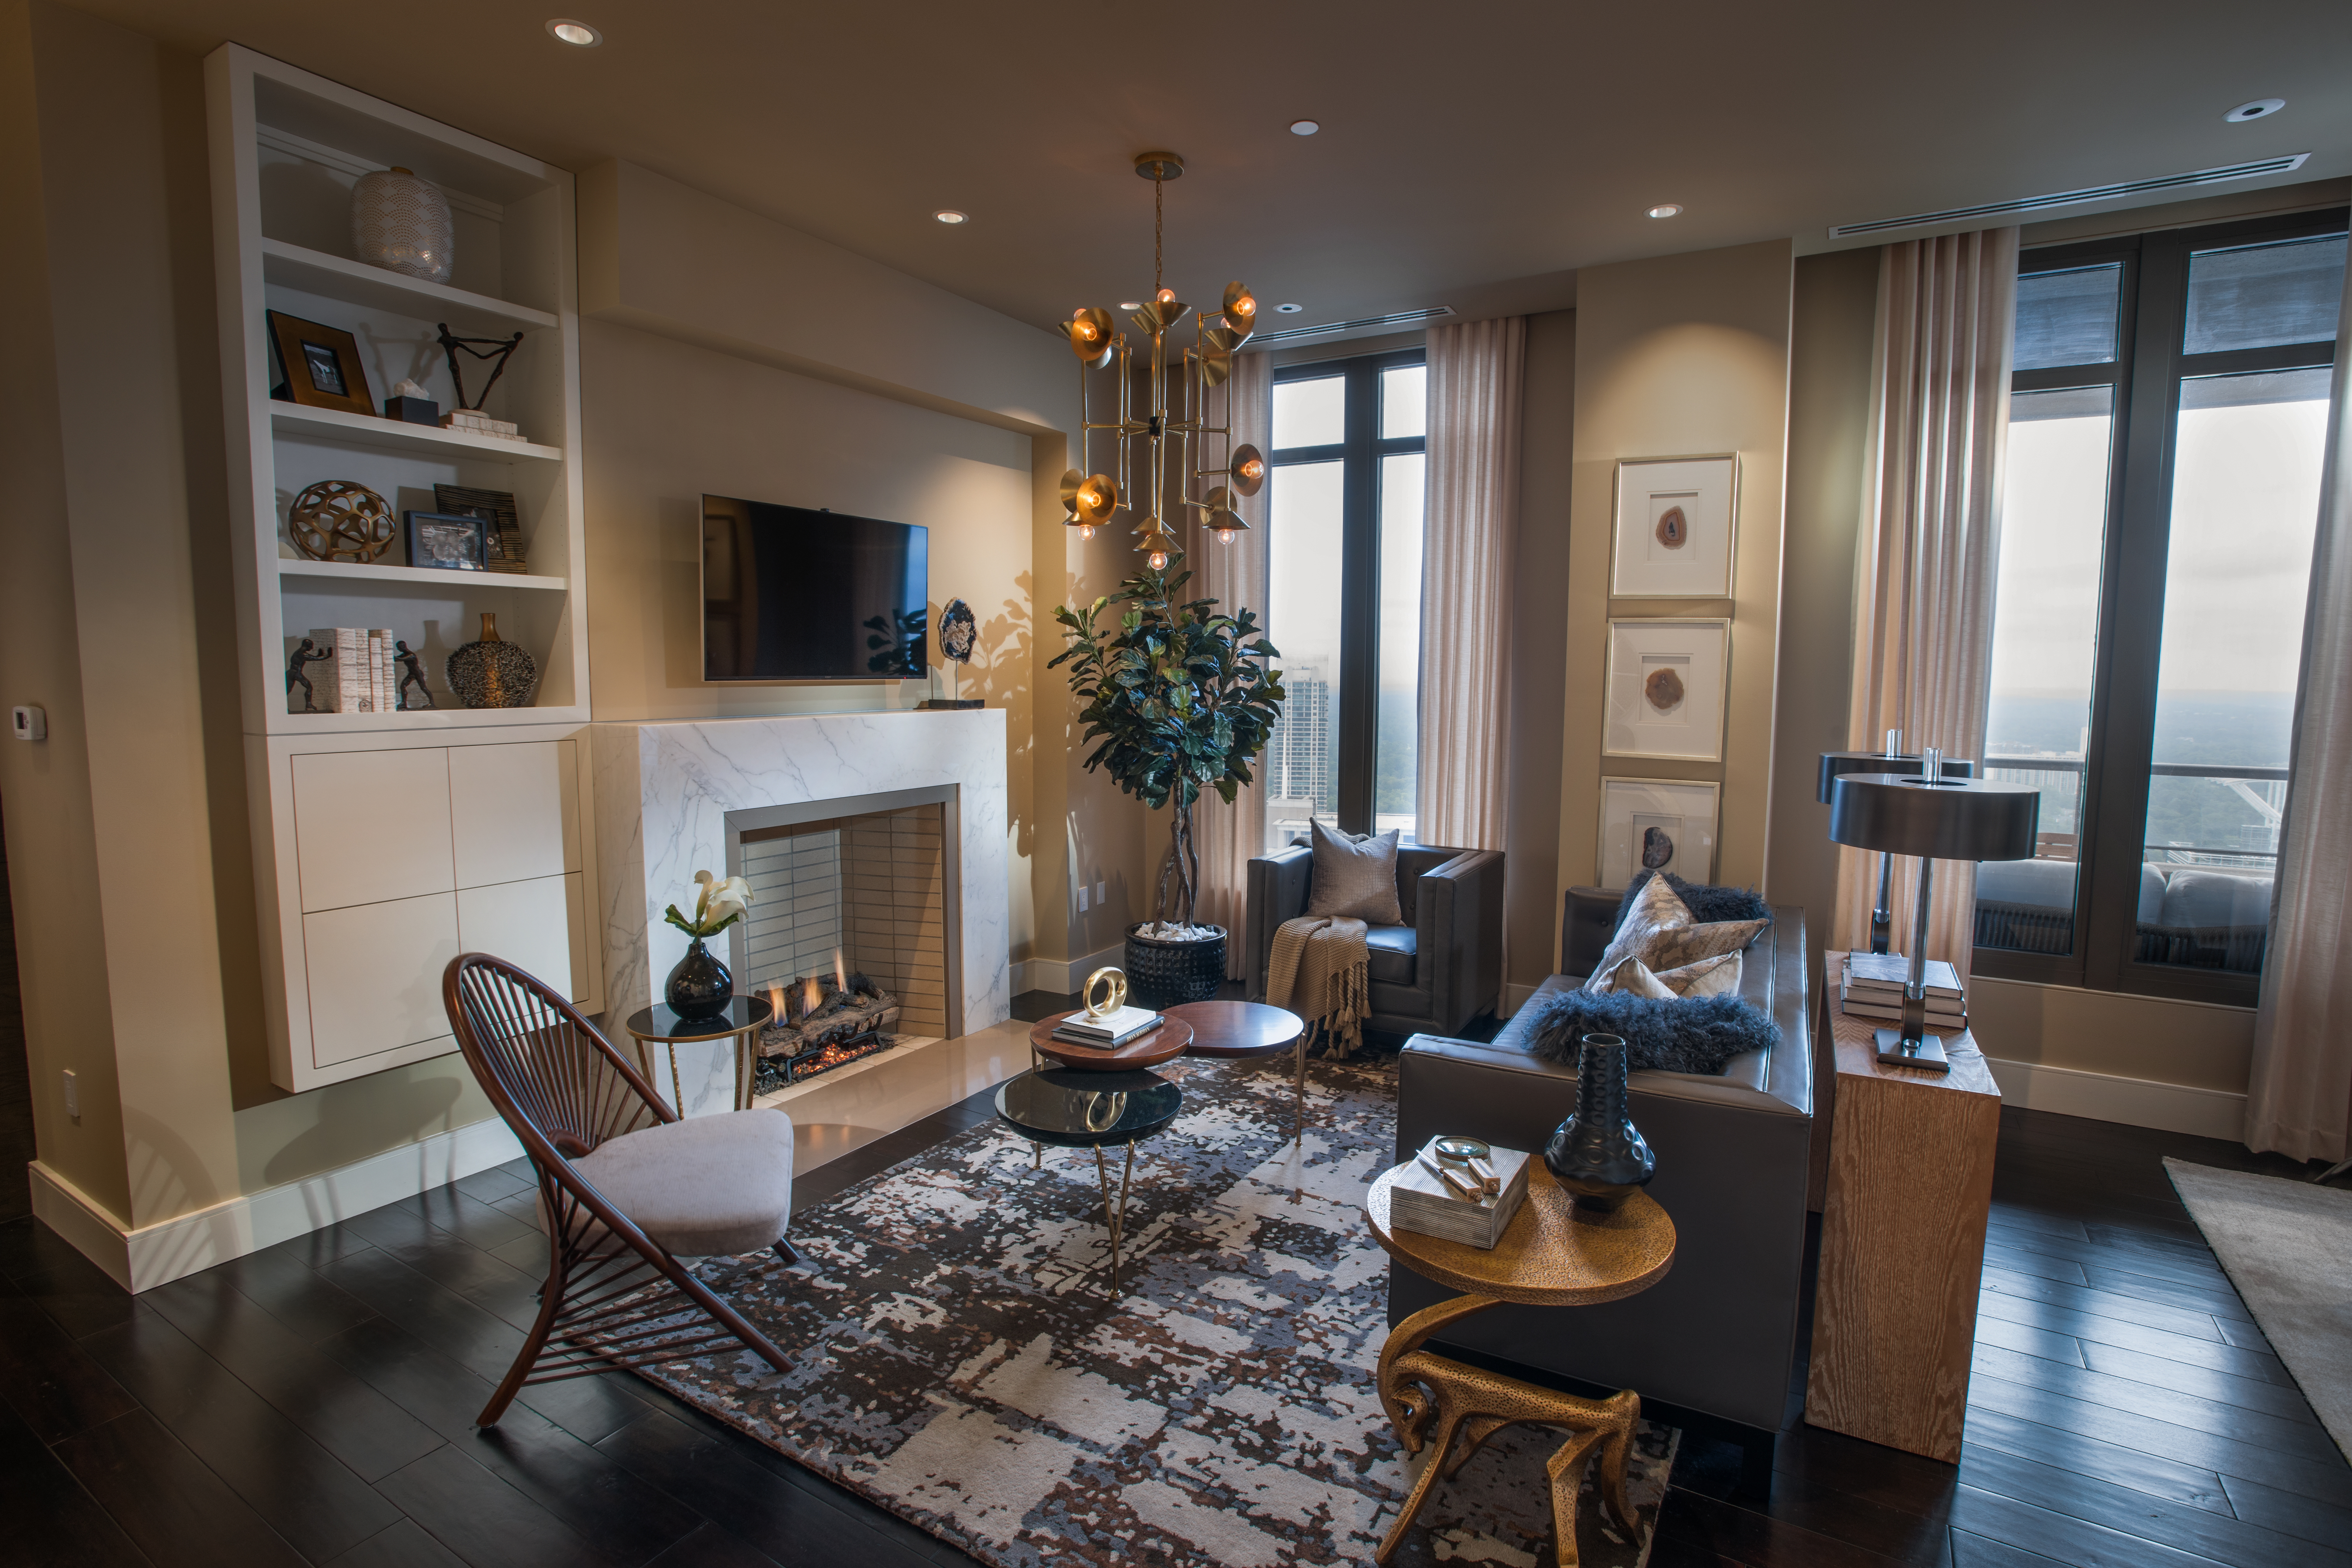 Inspired by the property's high-end design, refined modern elegance is showcased in the living room with black and gold finishes, custom-built shelving and Carrara marble surrounding the gas fireplace. (Photo: Business Wire)